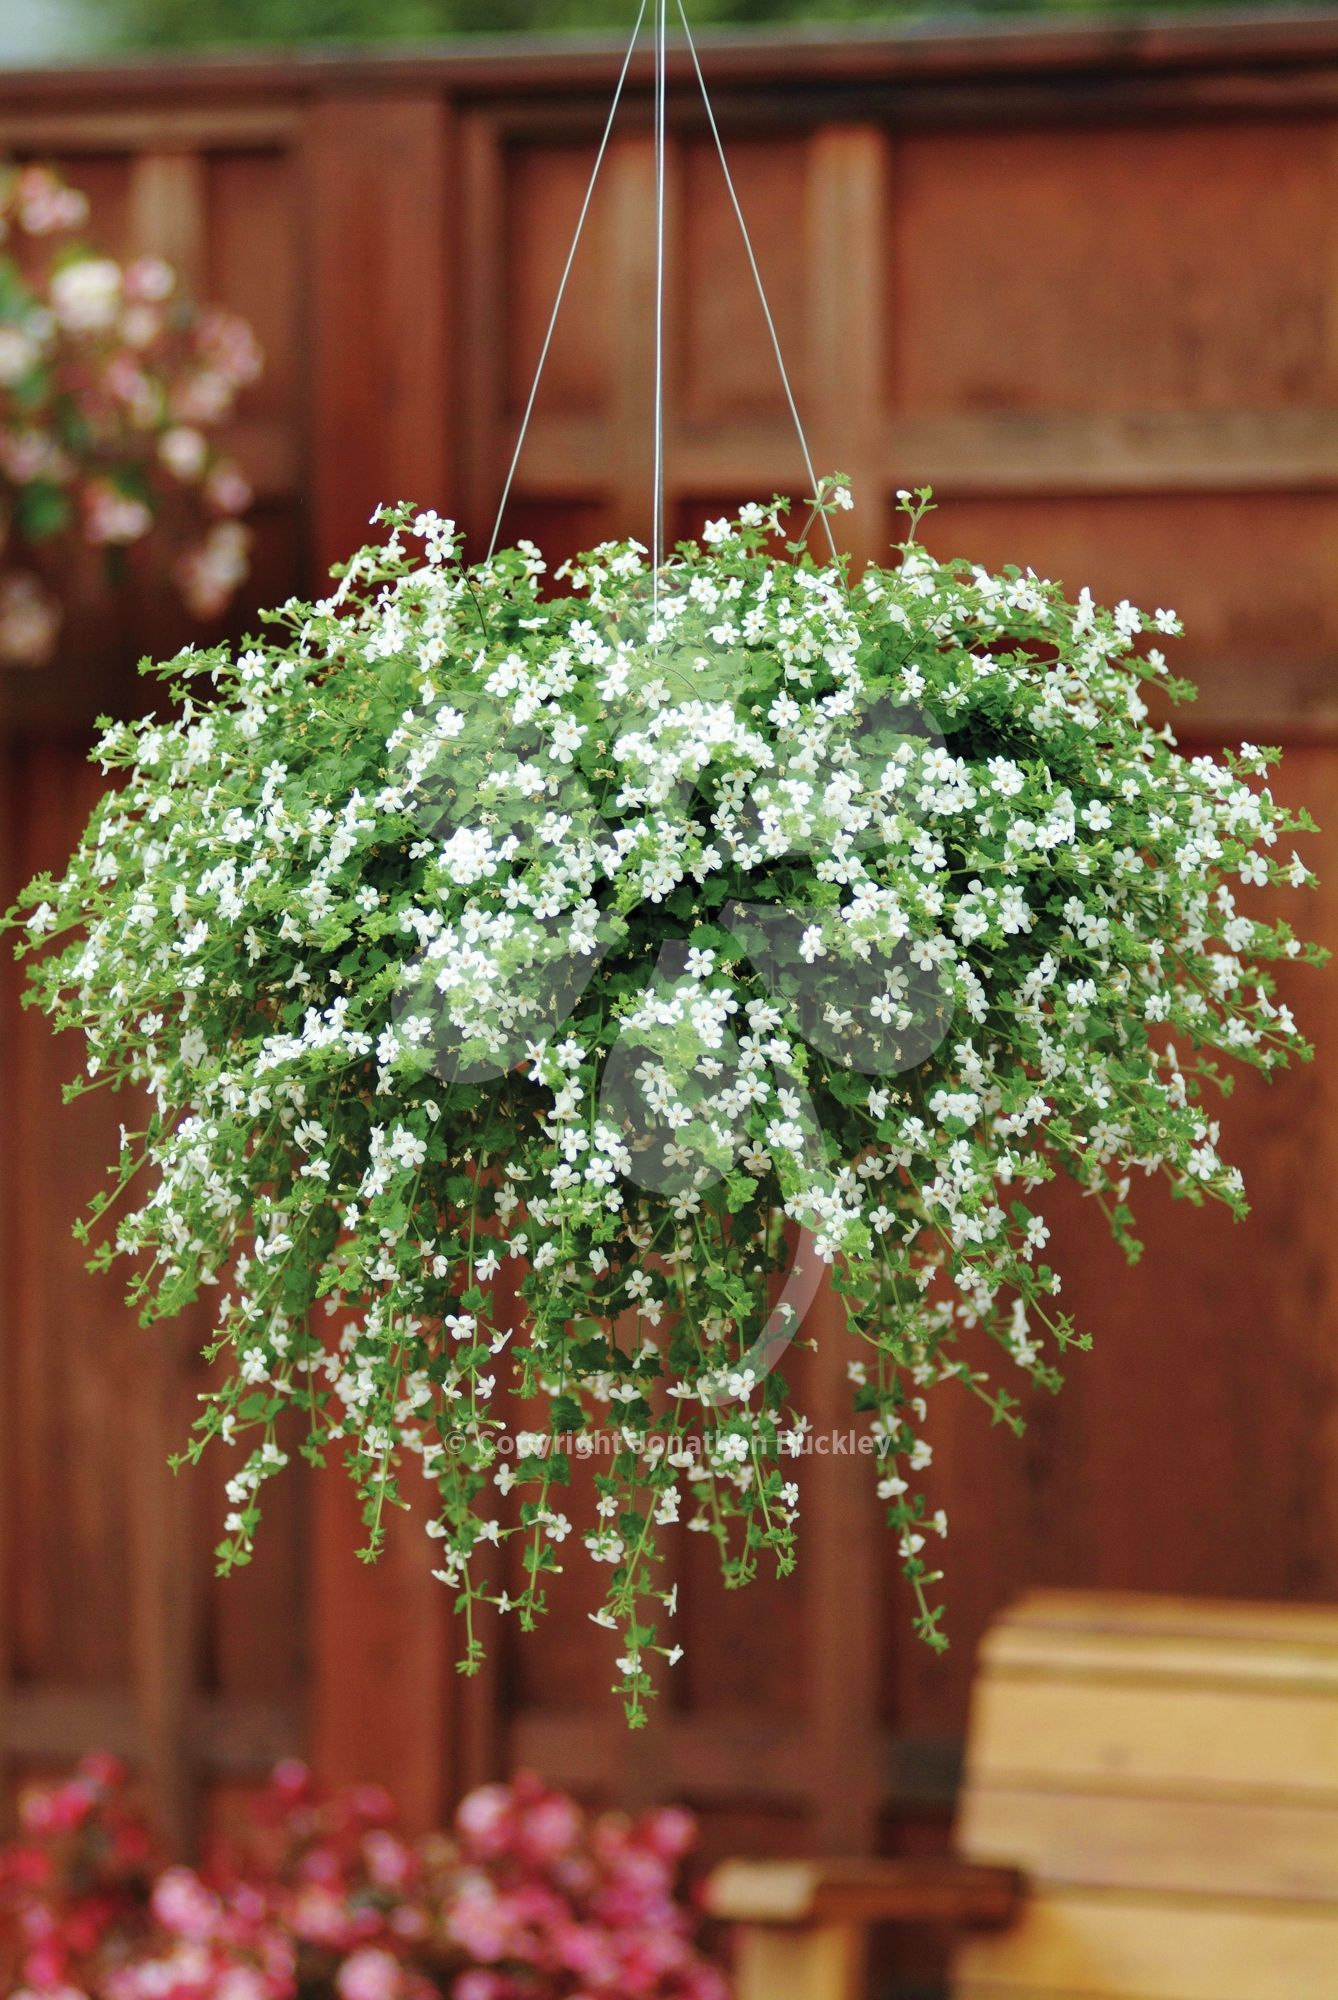 bacopa 39 snowtopia 39 fort leonard wood home hanging flower baskets container plants hanging. Black Bedroom Furniture Sets. Home Design Ideas